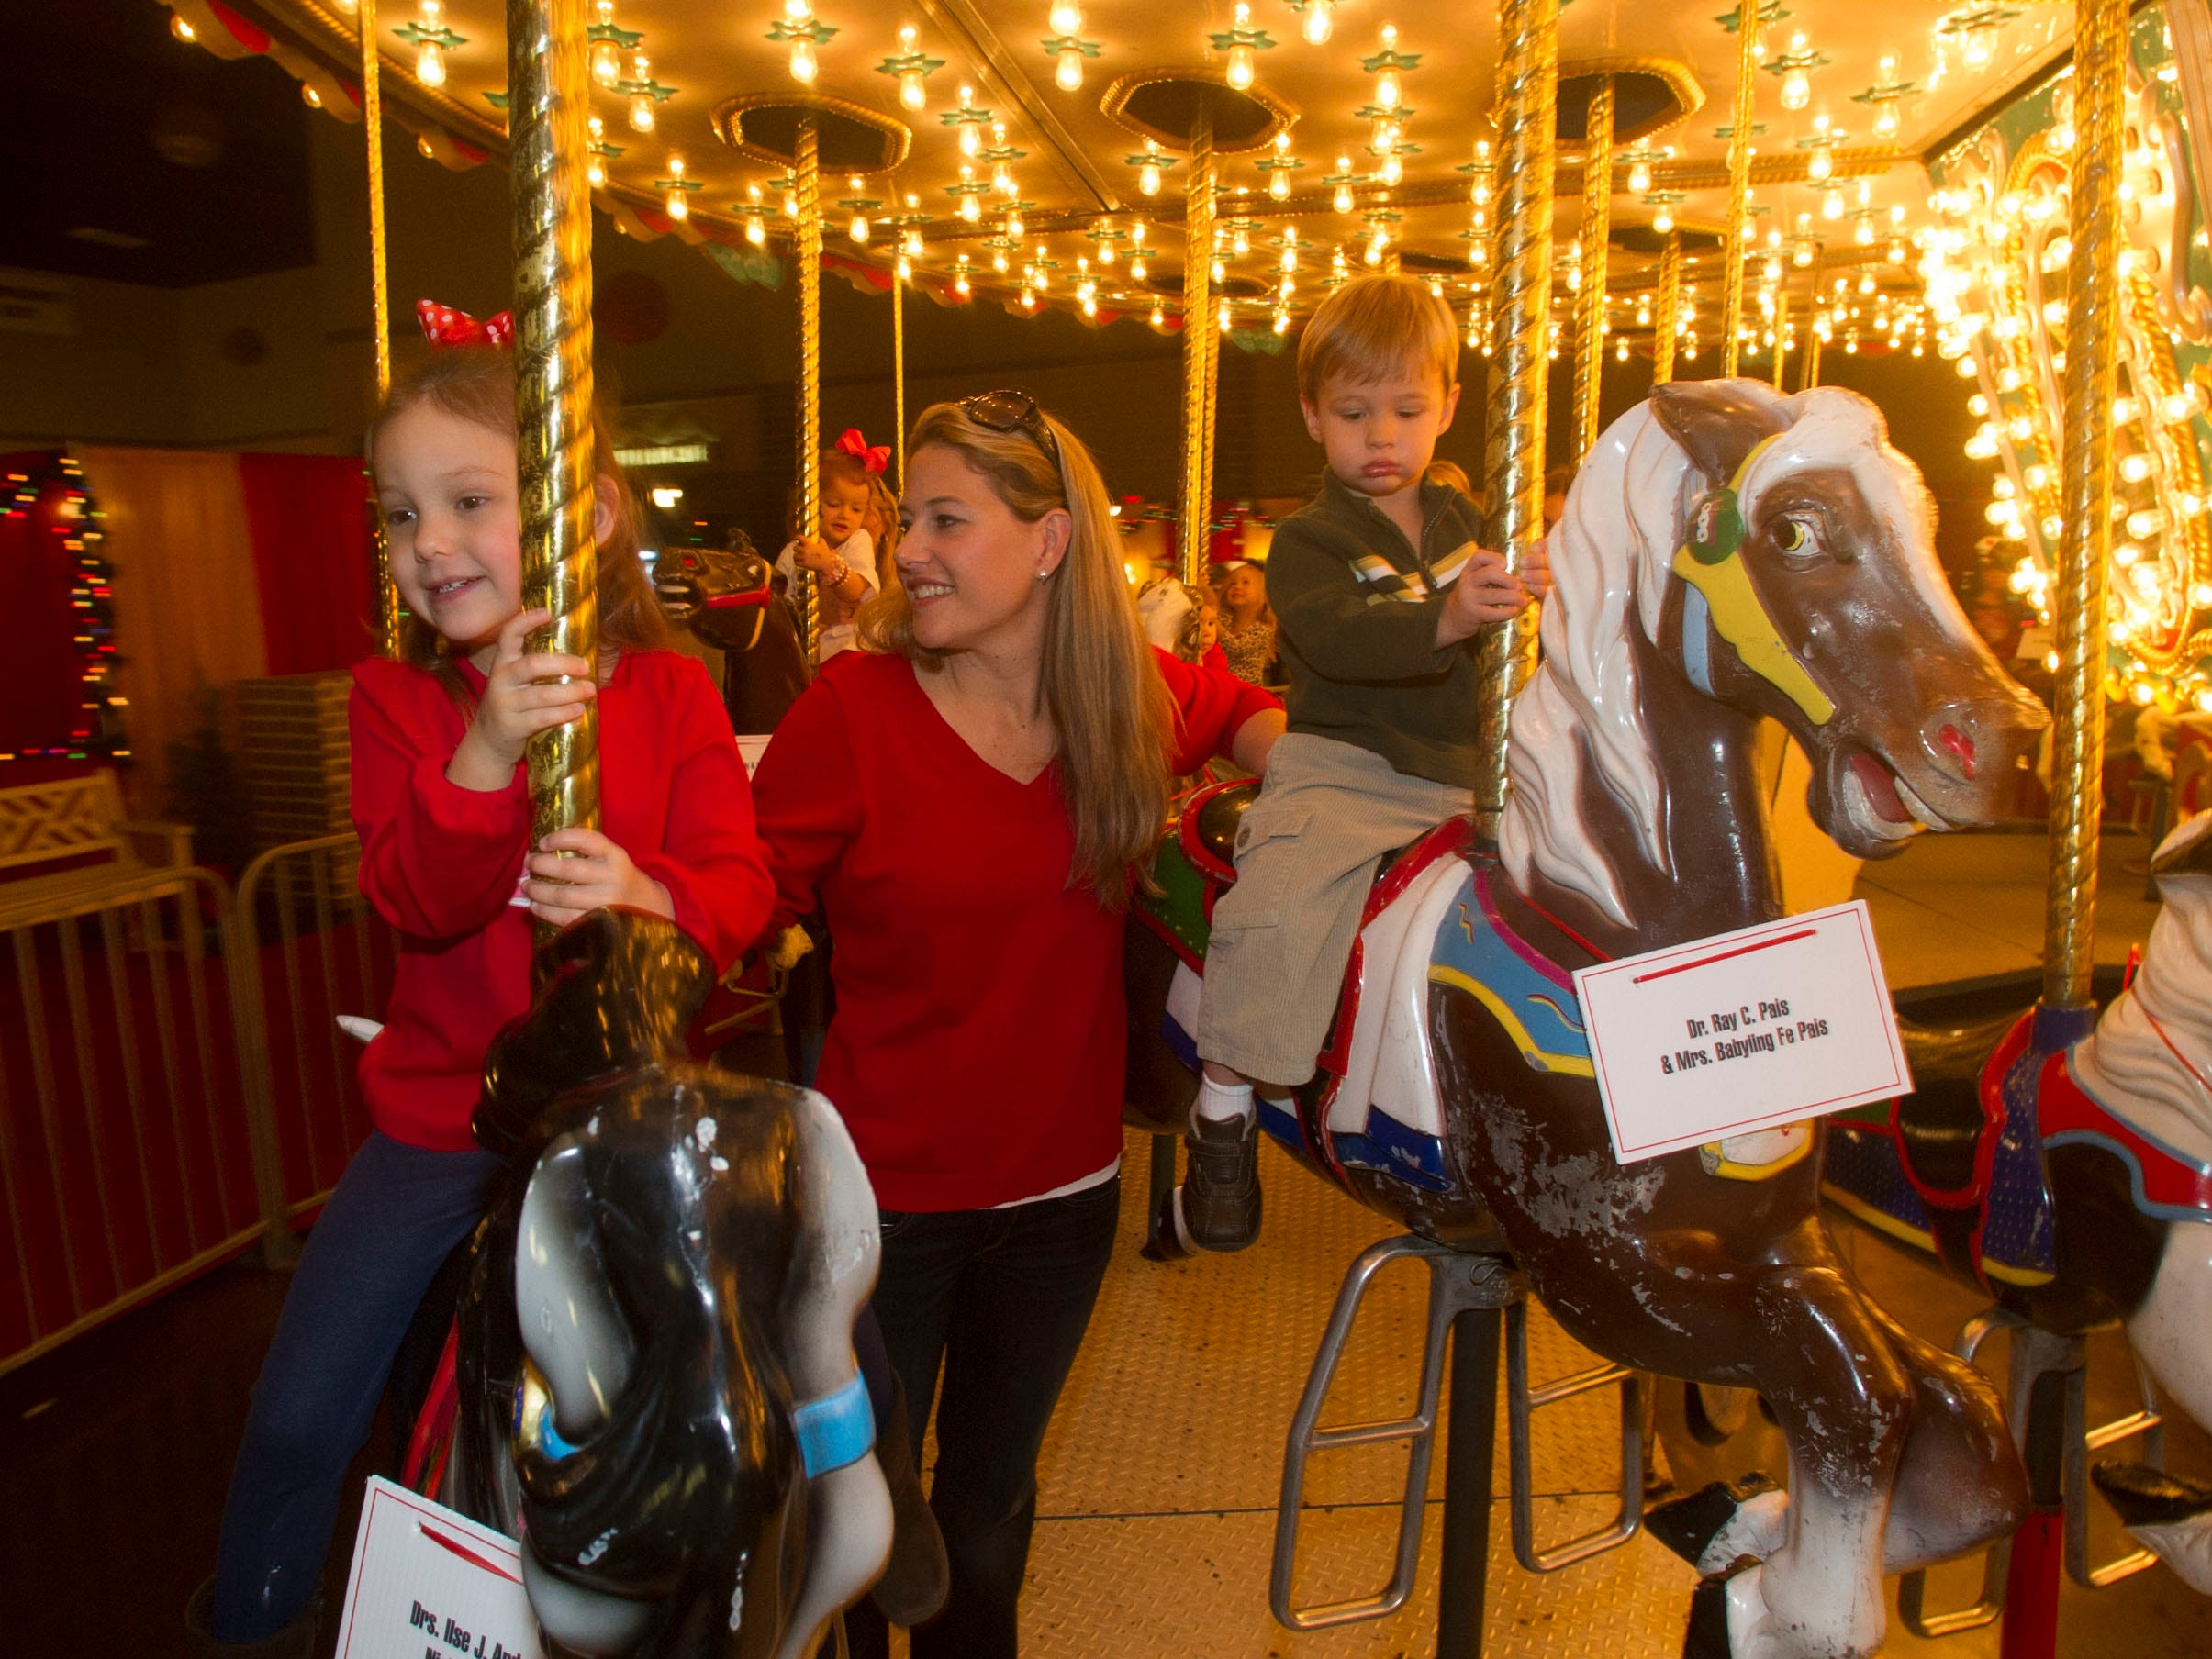 Rebecca Starnes, center and her children Emery, 4, left and Easton, 2 ride the carousel at the Fantasy of Trees.The 28th Fantasy of Trees once again transforms the downtown Knoxville Convention Center into a winter wonderland of decorated trees, gingerbread houses, holiday shops and children's activities, helping move Thanksgiving week into the Christmas season. ( J. MILES CARY/NEWS SENTINEL )